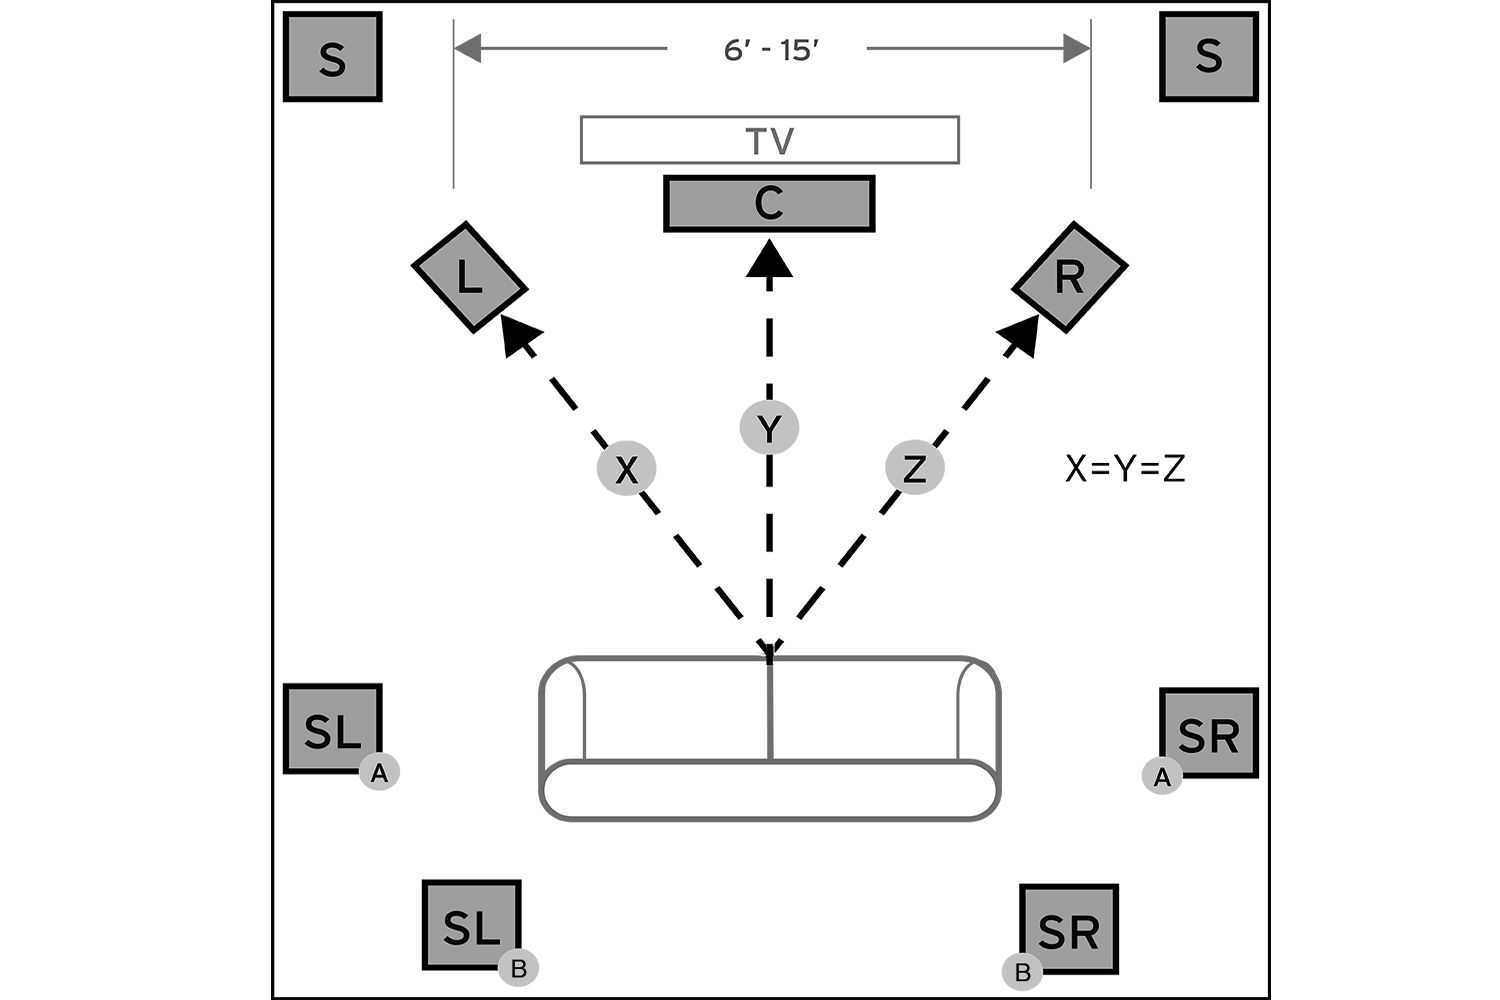 diagram of 3 1 rescue system 2006 suzuki eiger wiring how to set up a basic home theater